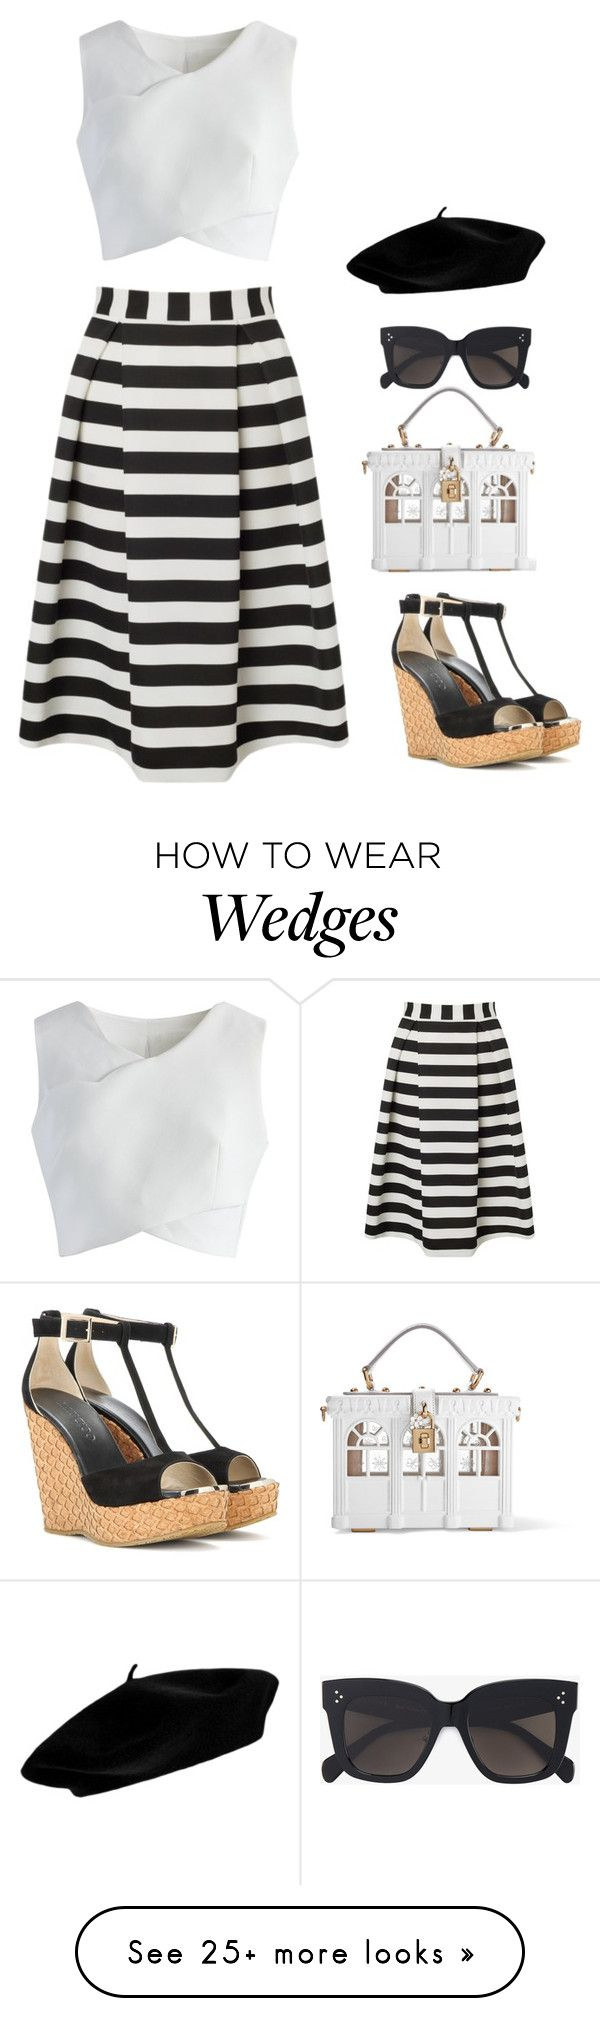 """""""Untitled #765"""" by mamabear558 on Polyvore featuring Lipsy, Chicwish, Jimmy Choo, Dolce&Gabbana and CÉLINE"""